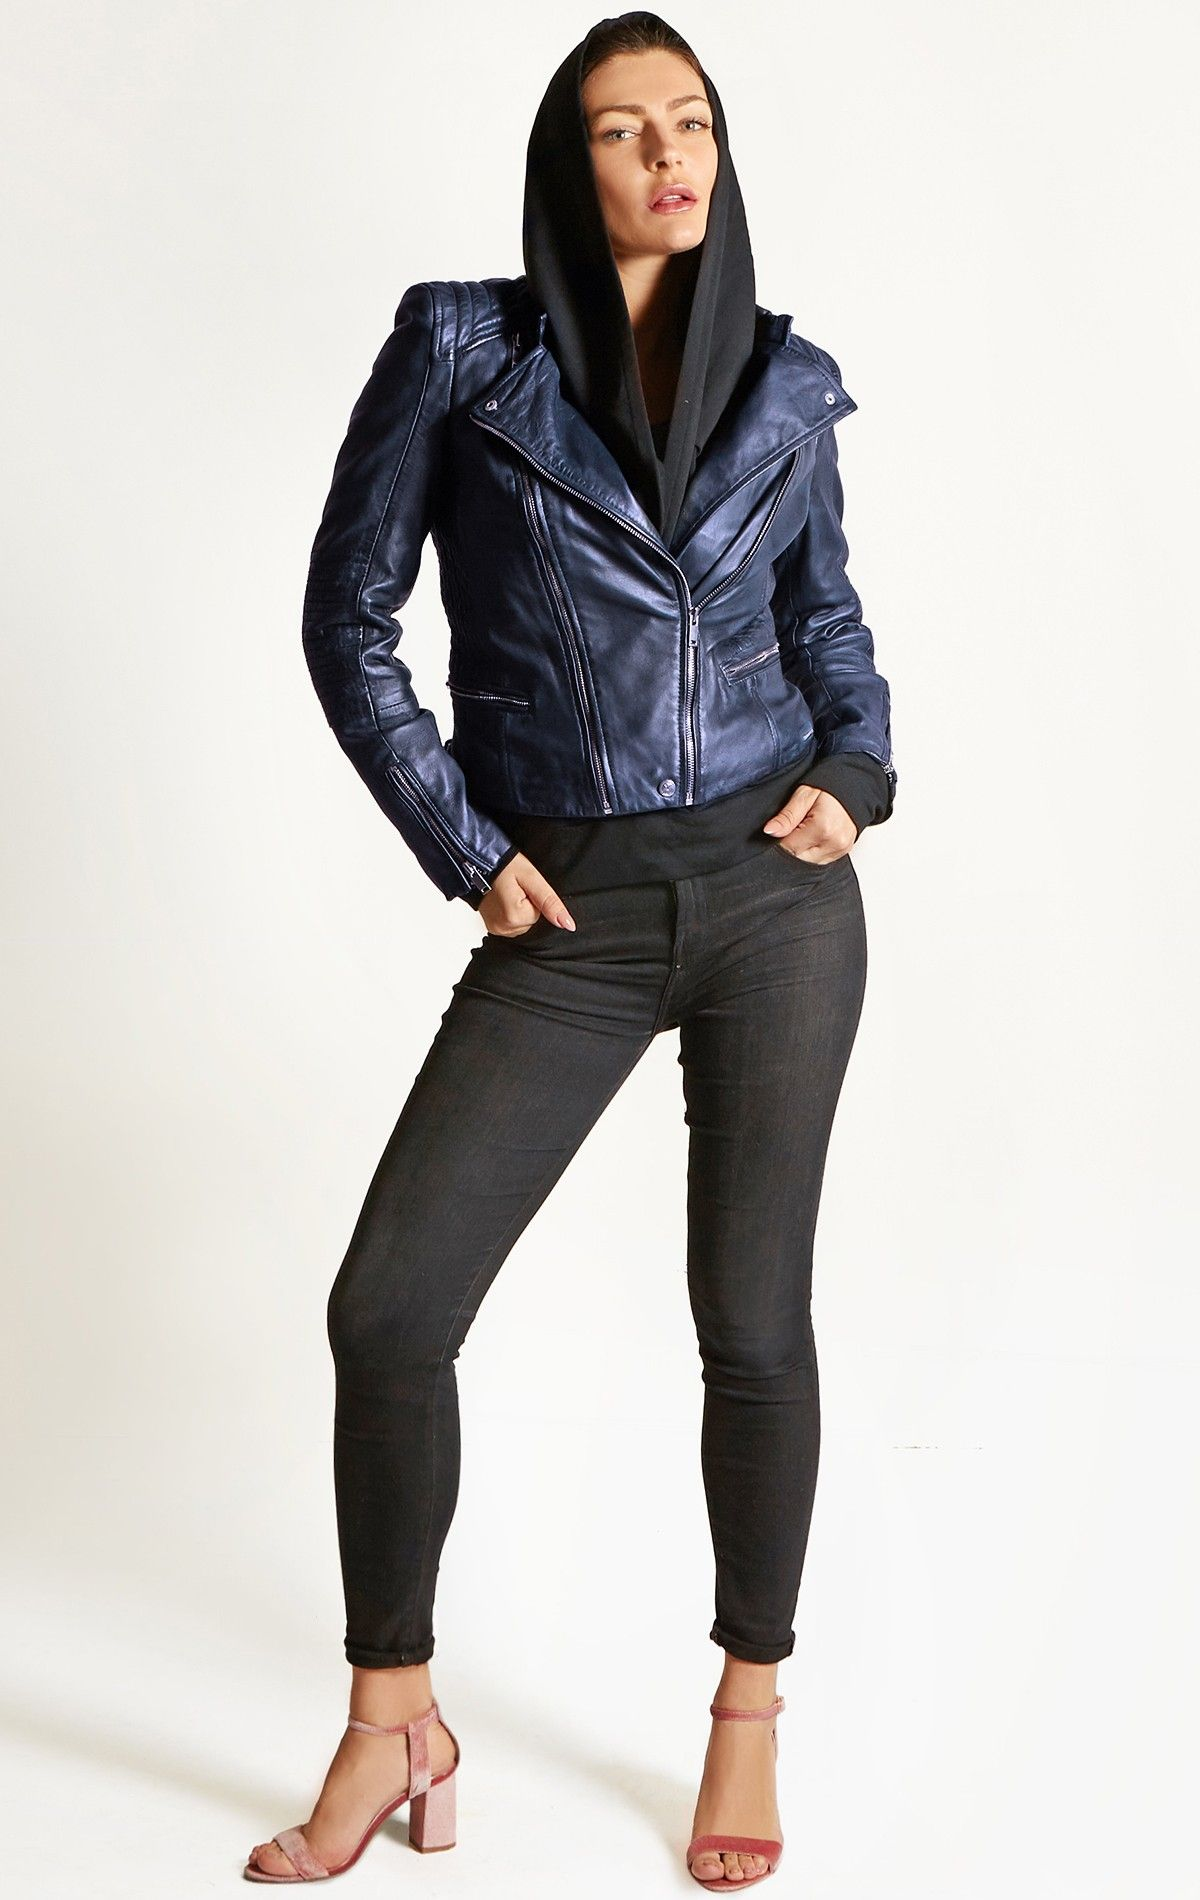 Biker Jacket – a Must-Have for Every Occasion